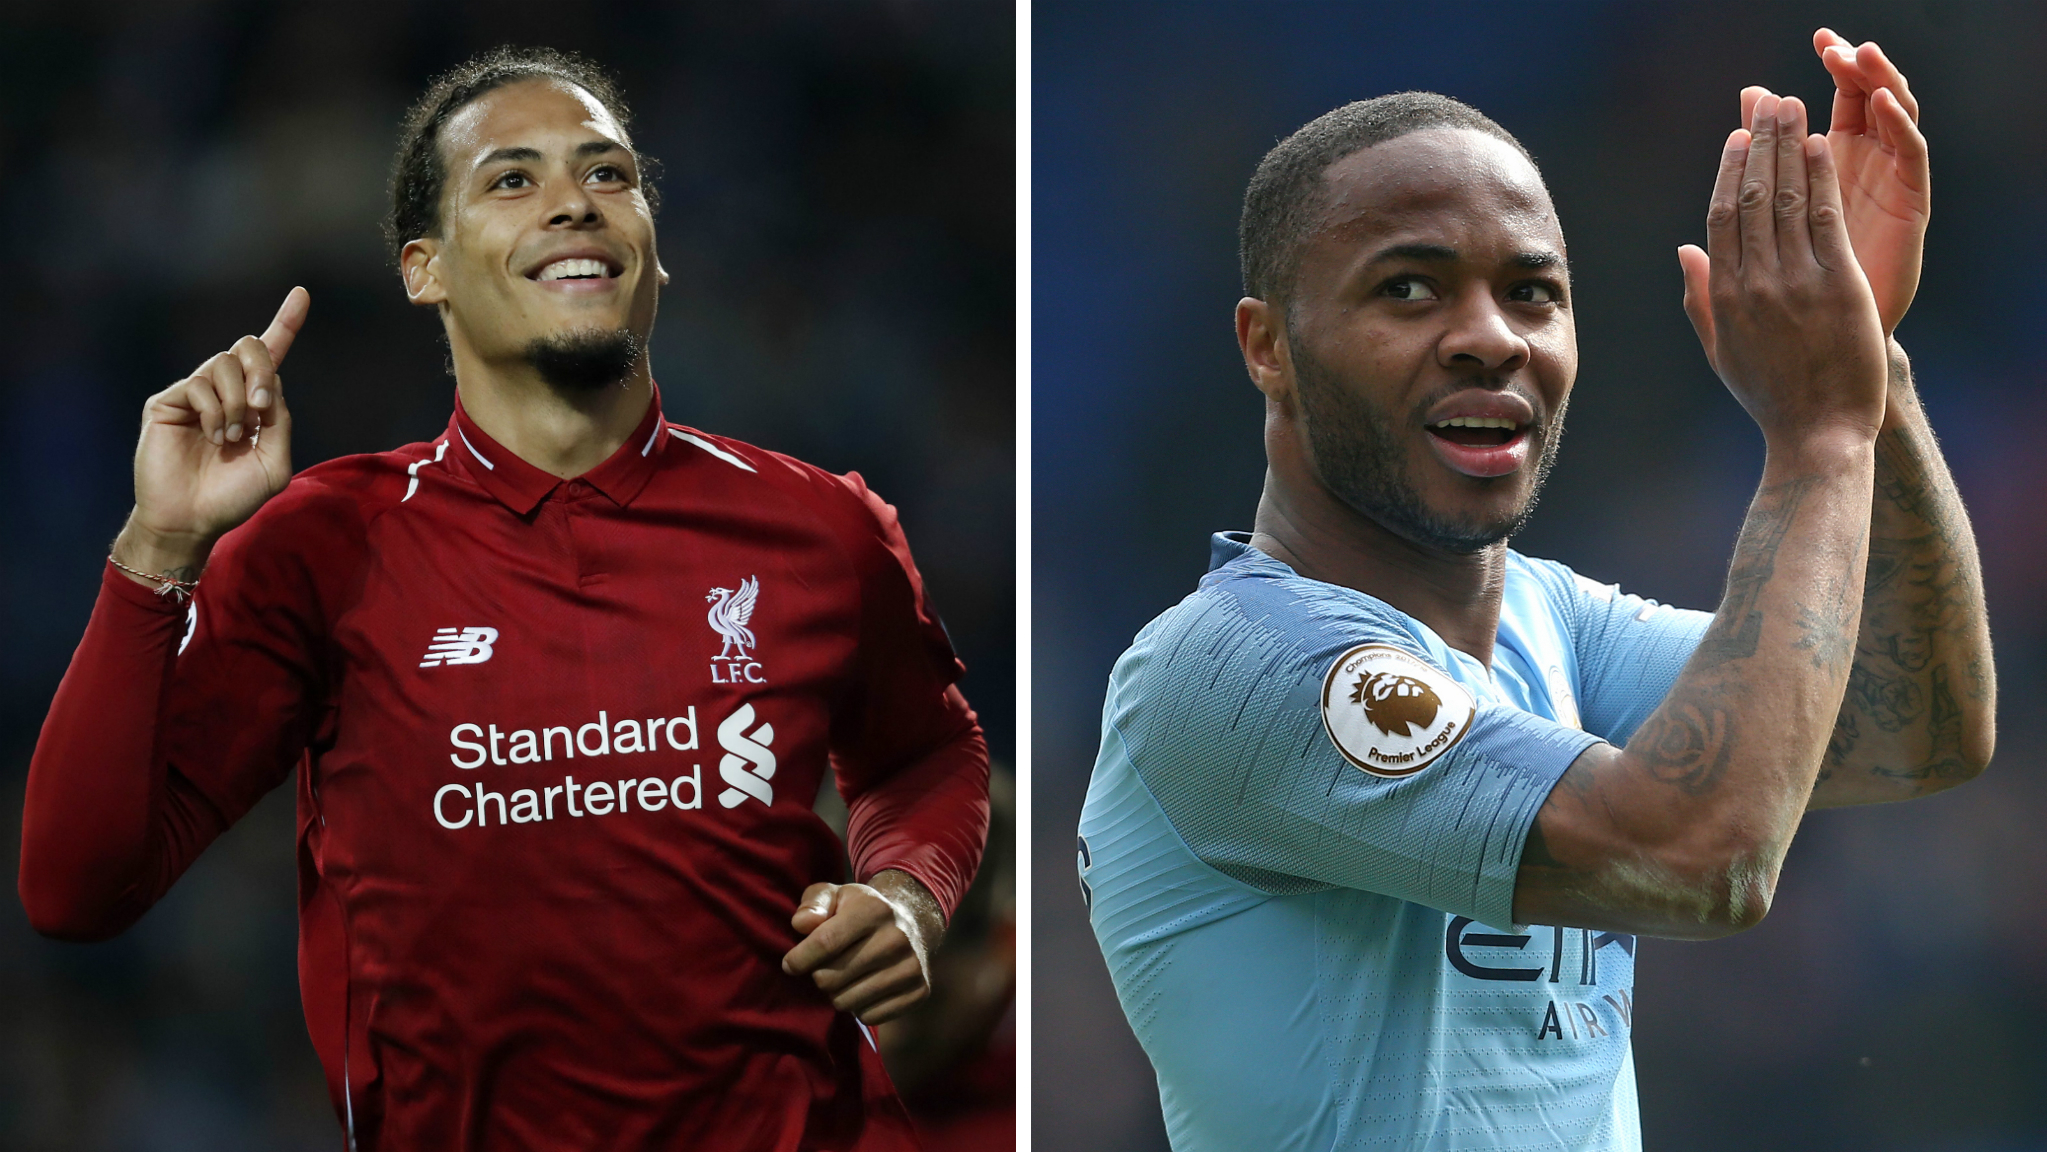 Van Dijk or Sterling? See who the pundits pick as player of the year & choose yours